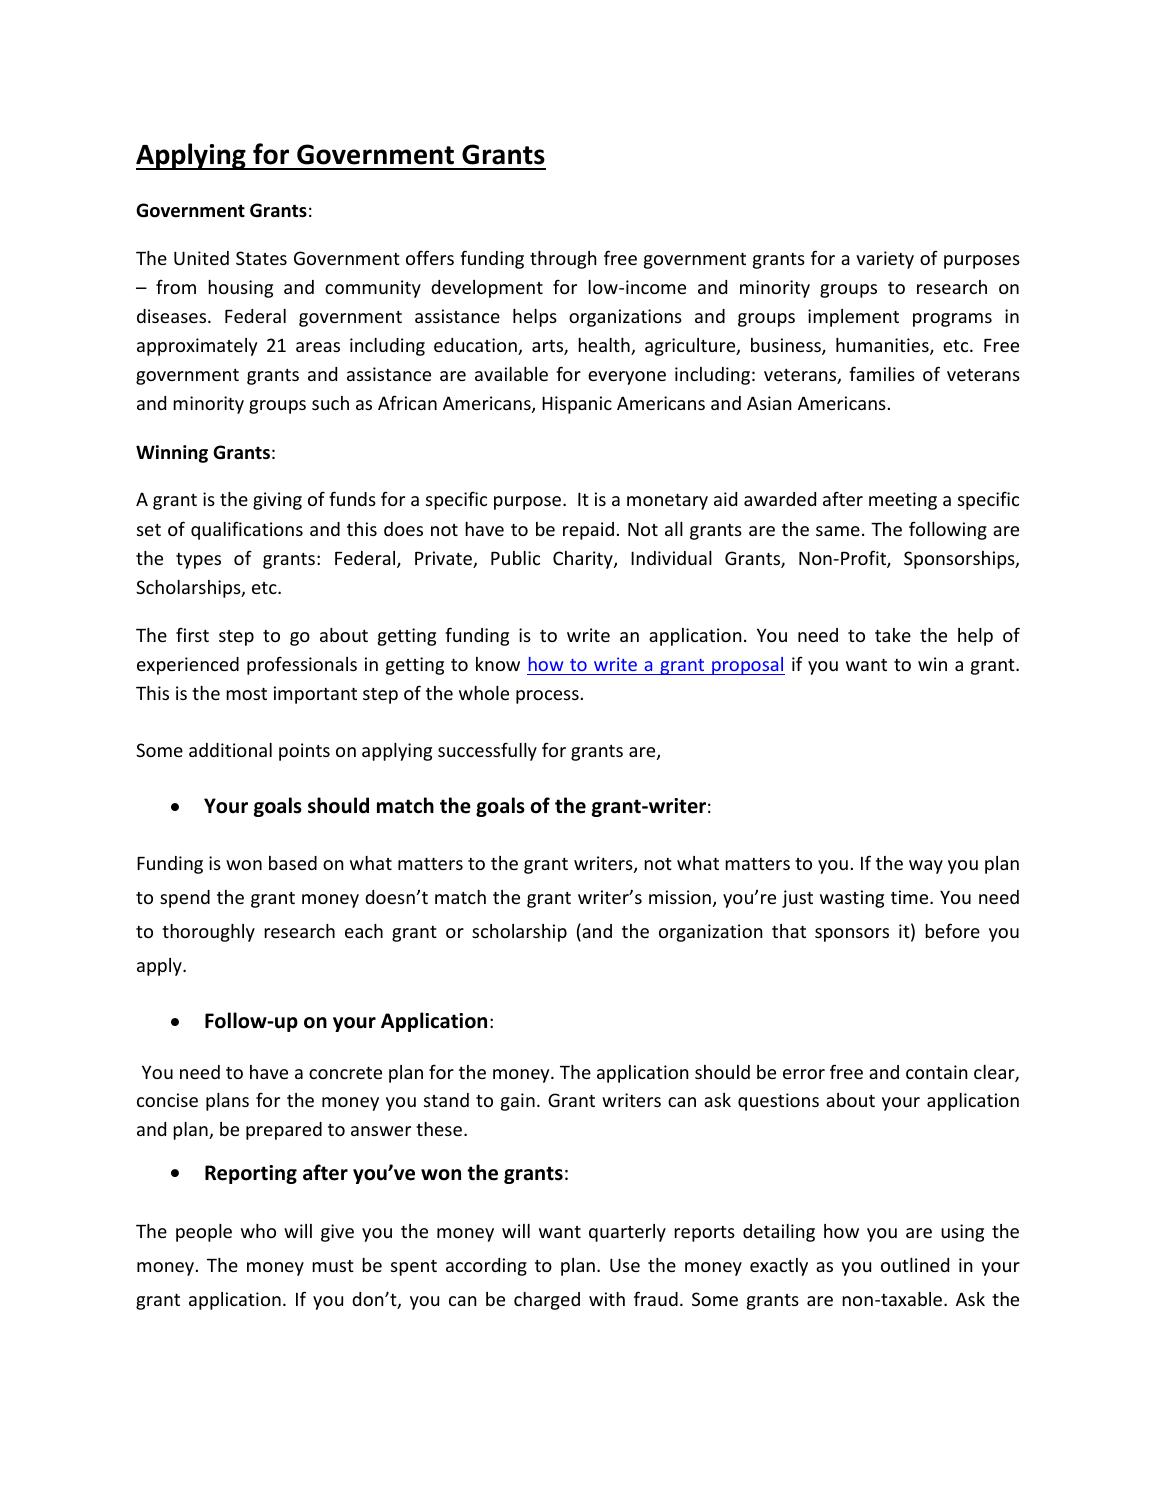 Applying for Government Grants by tombill444 - issuu